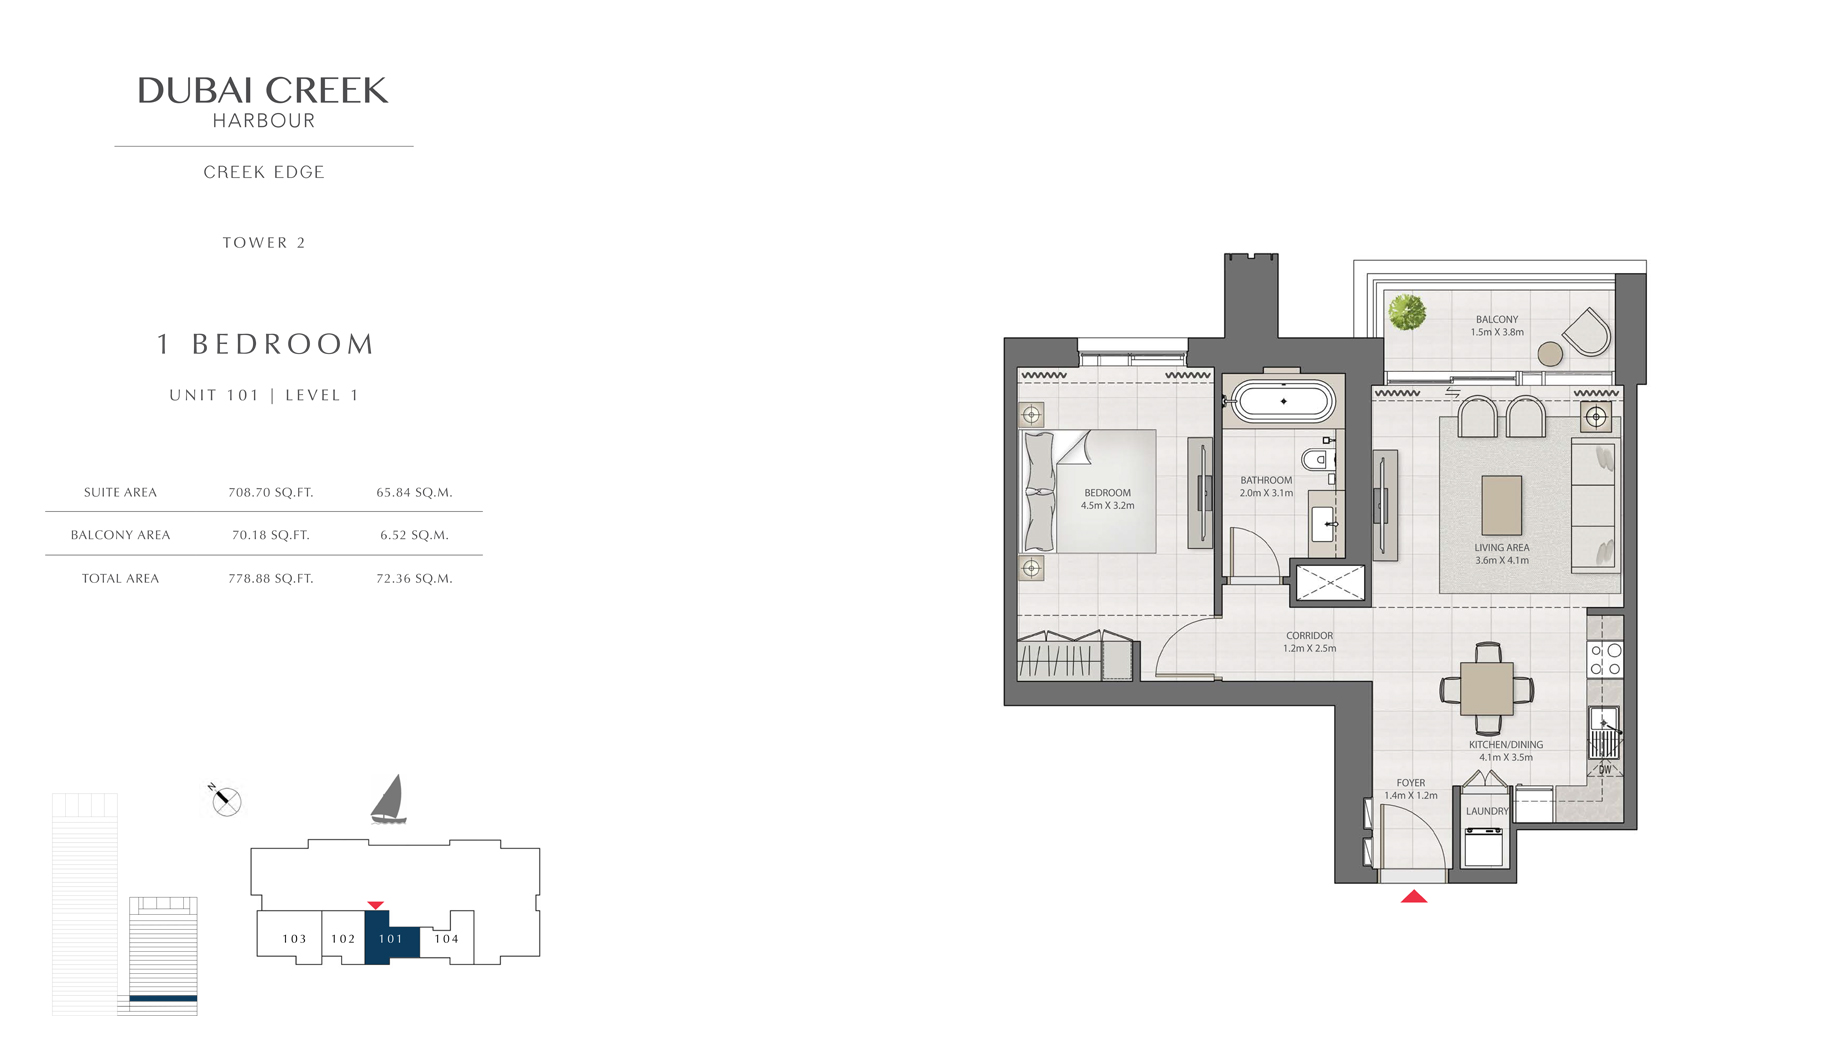 1 Bedroom Tower 2 Unit 101 Level 1 Size 778 sq.ft